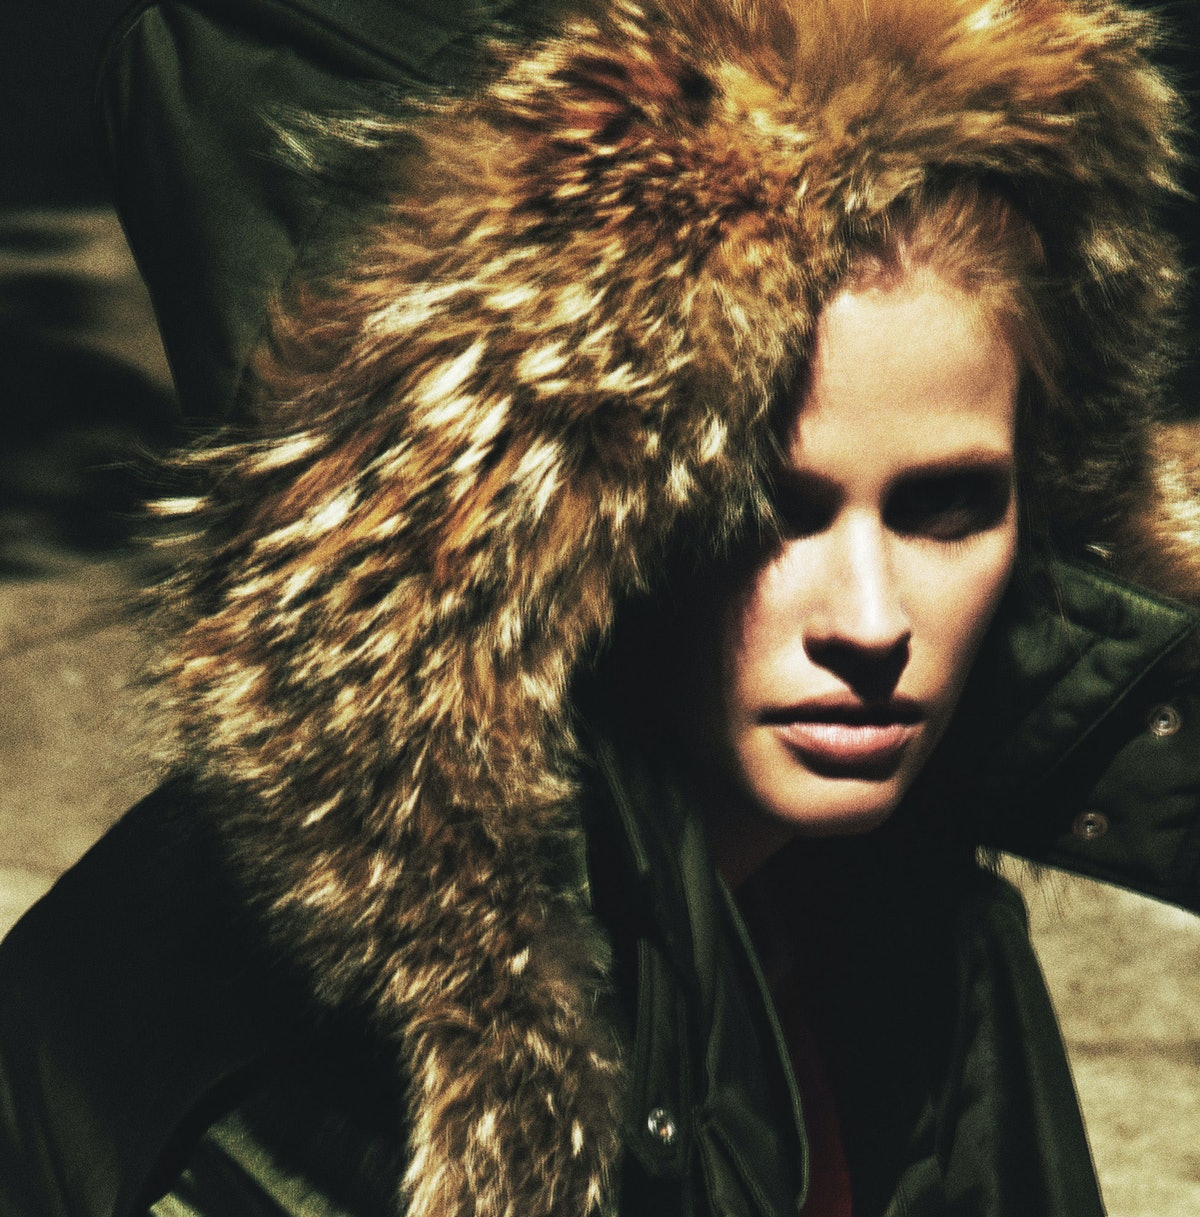 When in doubt, break out the parka